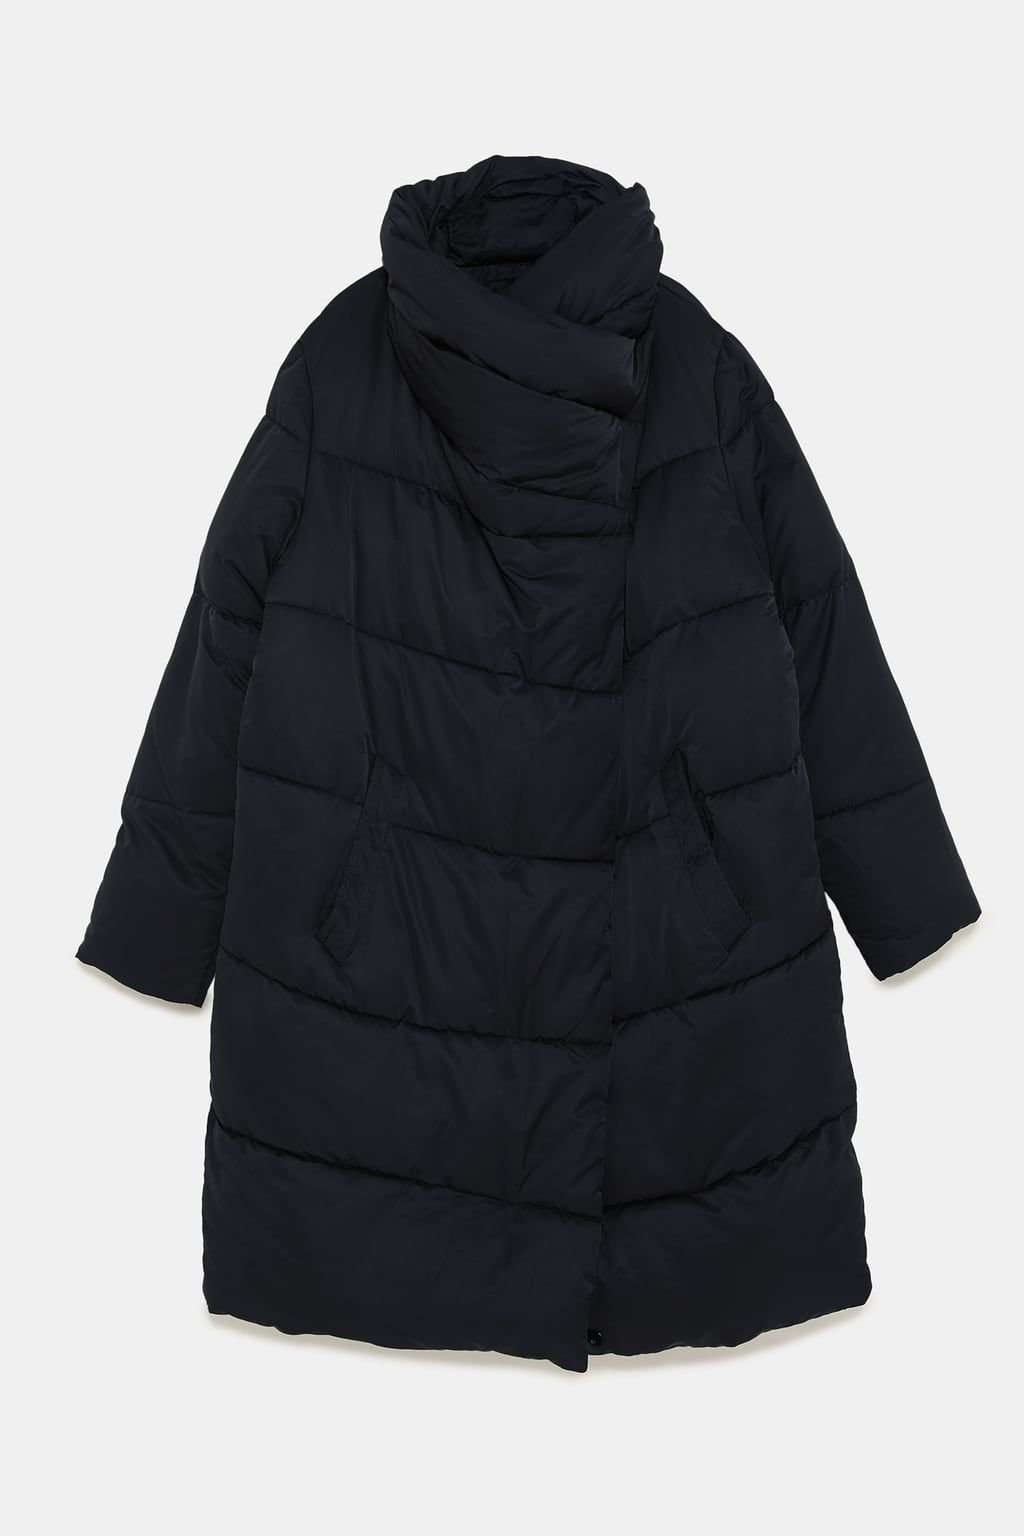 Puffer Coat With Wraparound Collar Details8 990 Rsdblack 3046 222 Puffer Coat Puffer Jackets Fashion Friday